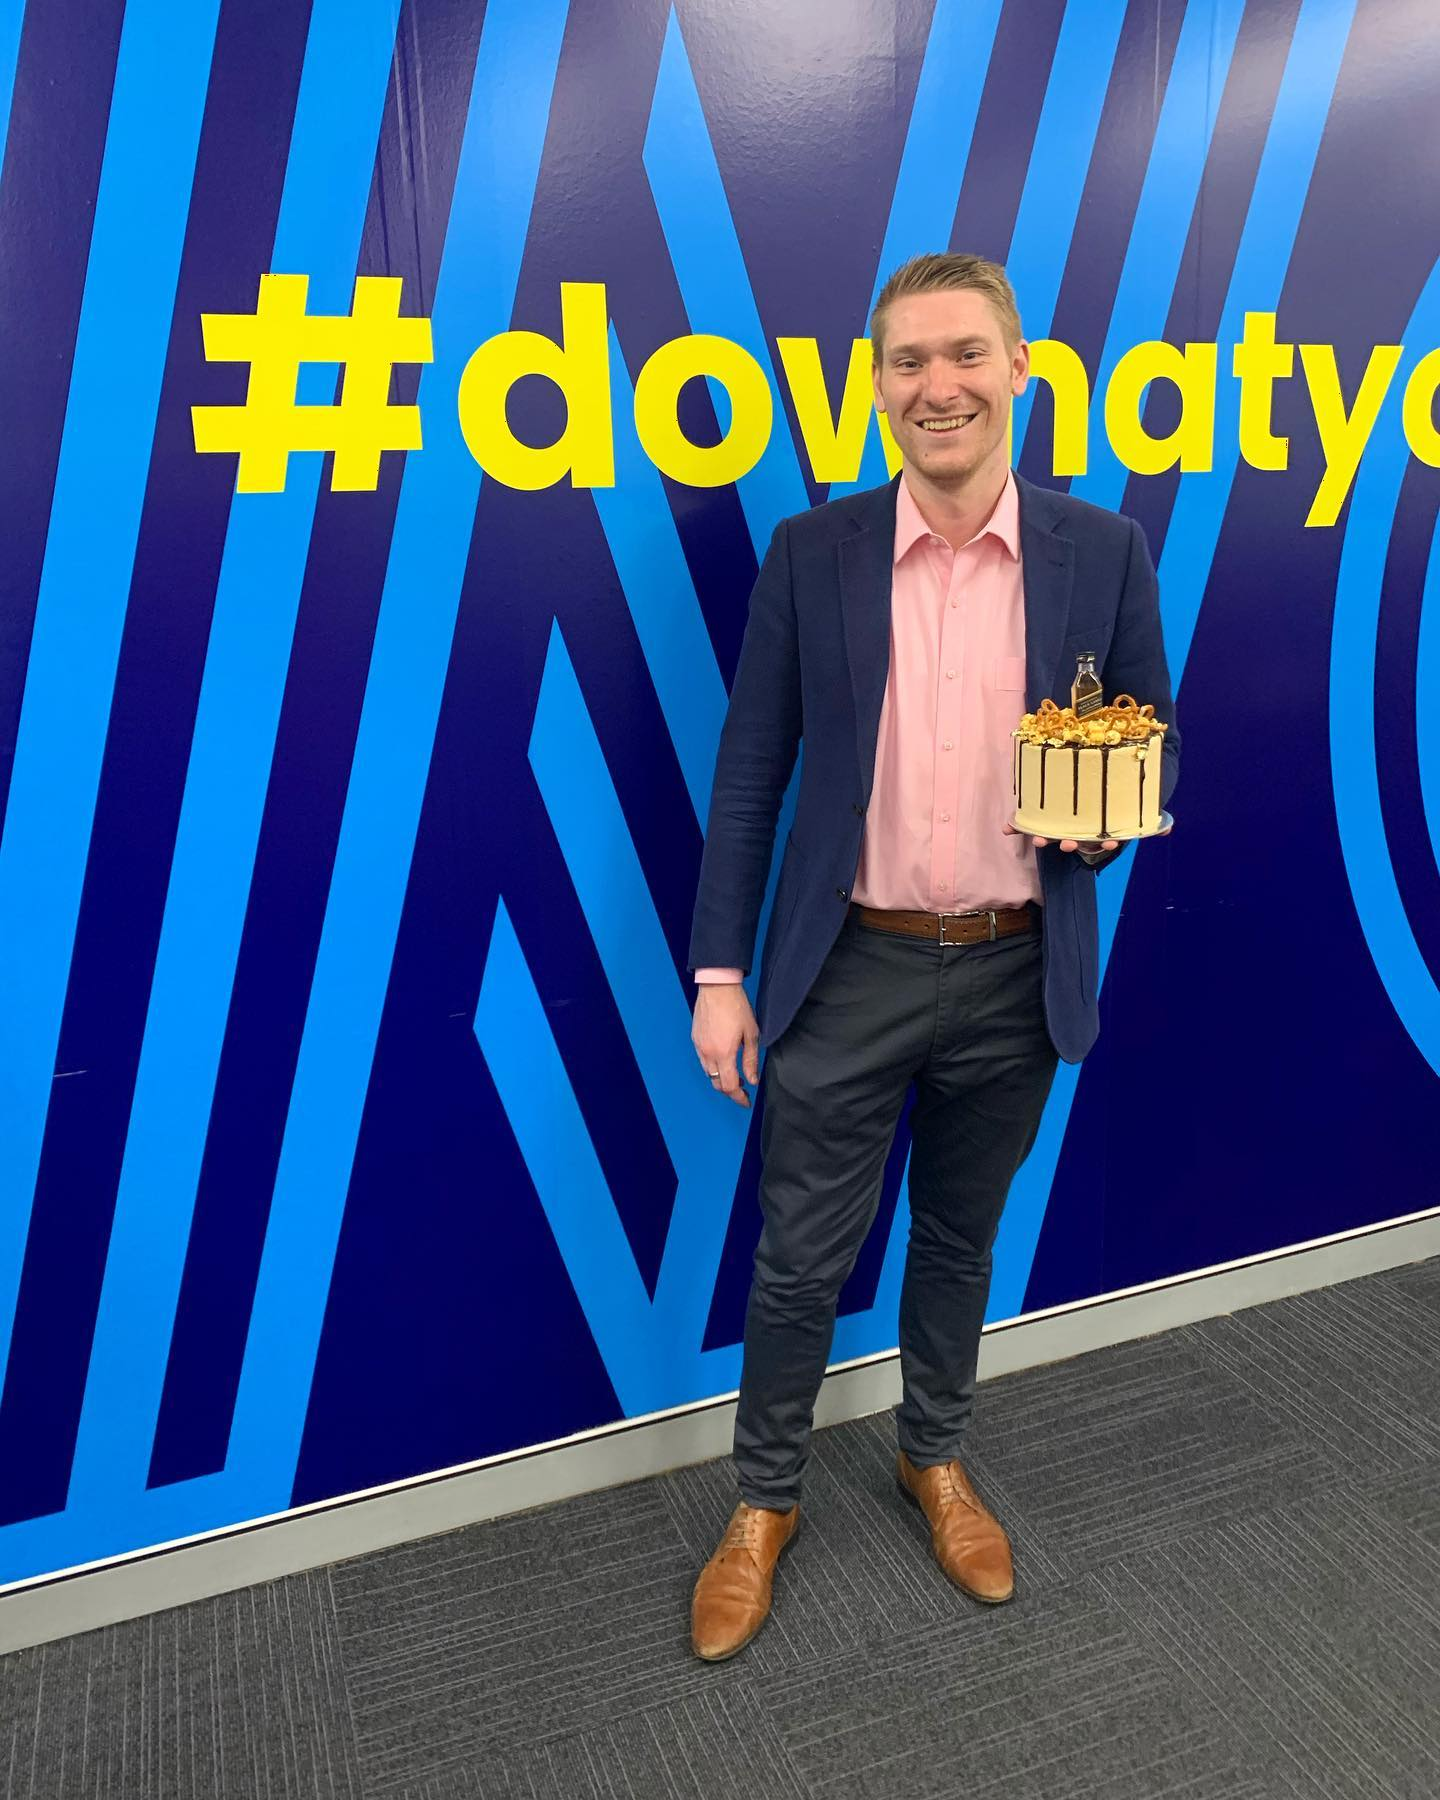 Happy Birthday Matt! Here's to another successful year 🙂 #dowhatyoulove #workhappy #recruitmenthappy #birthday #wowrecruitment